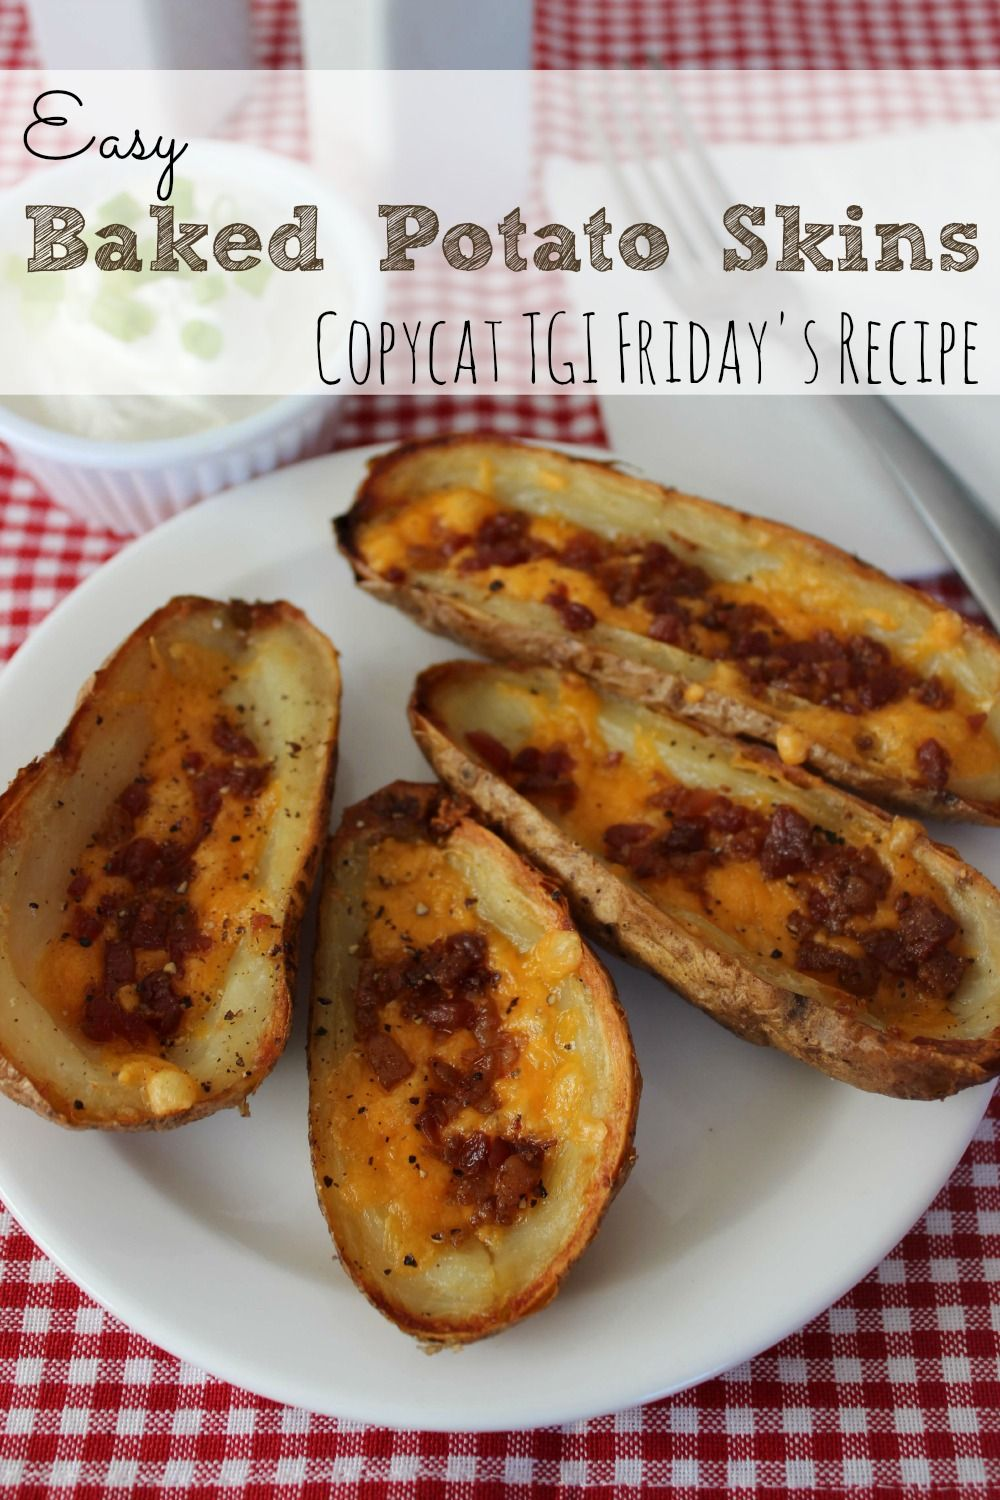 We love potato skins, but most restaurants fry them first, which isn't very healthy.  This baked potato skins recipe rivals any you can find in a restaurant